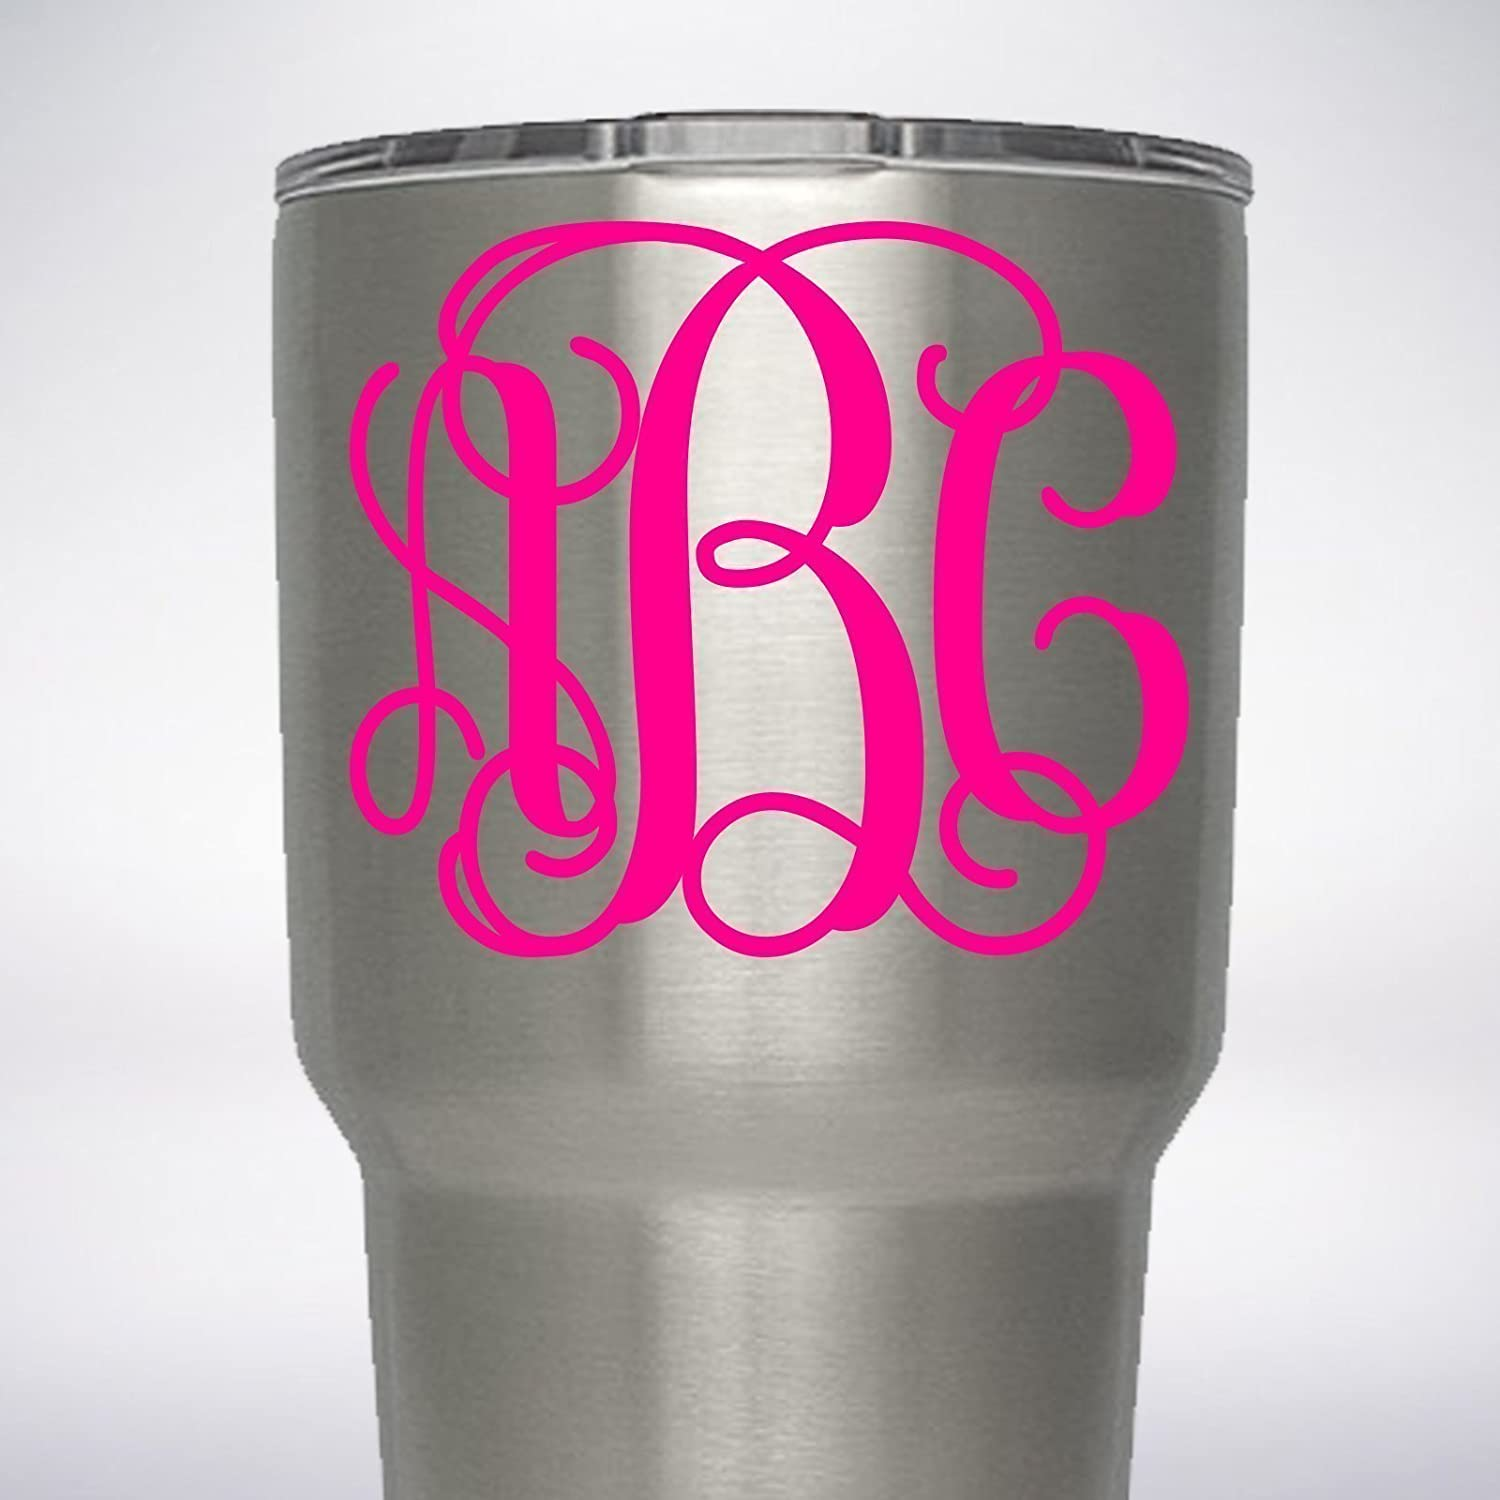 Amazoncom Stickers Decorative Accessories Handmade Products - Stickers for yeti cups